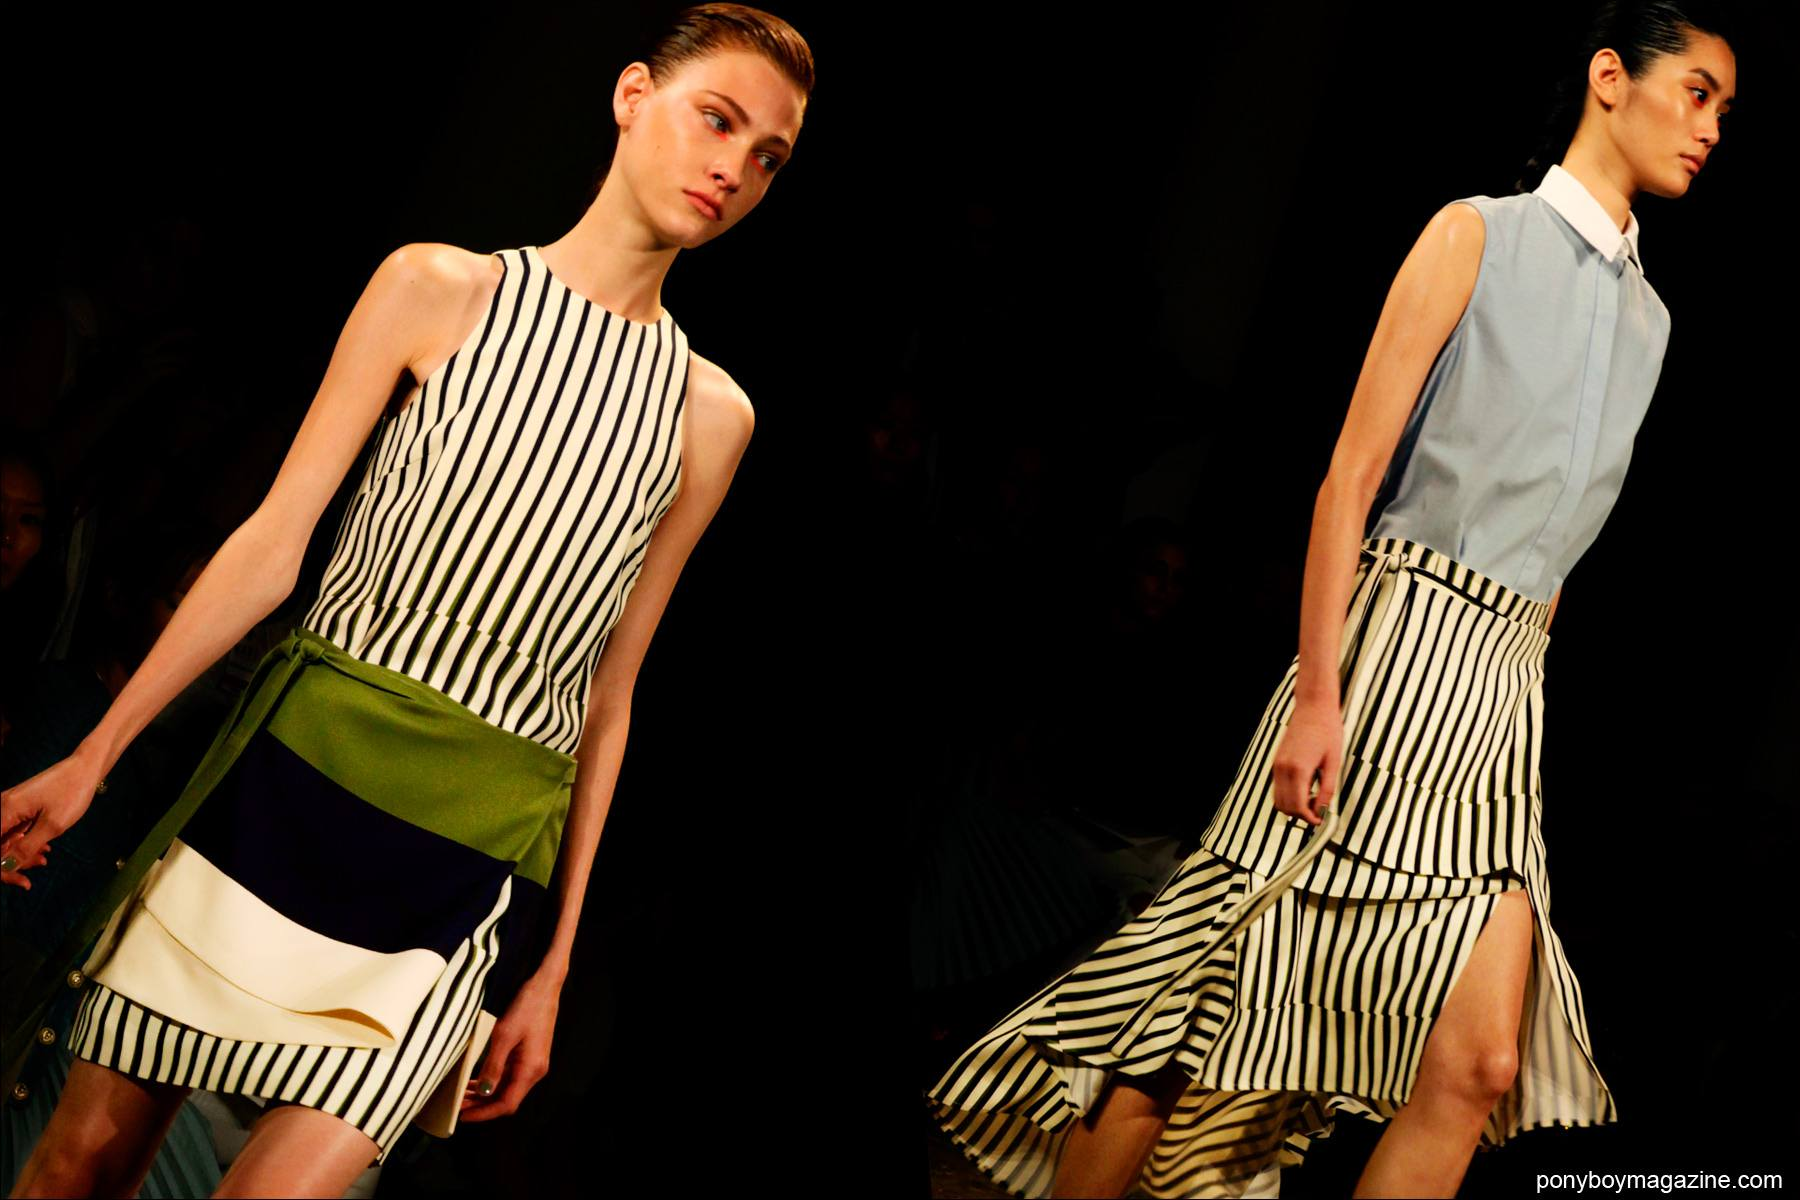 Models on the runway in striped creations, designed by Peter Som S/S15. Photos by Alexander Thompson for Ponyboy Magazine.